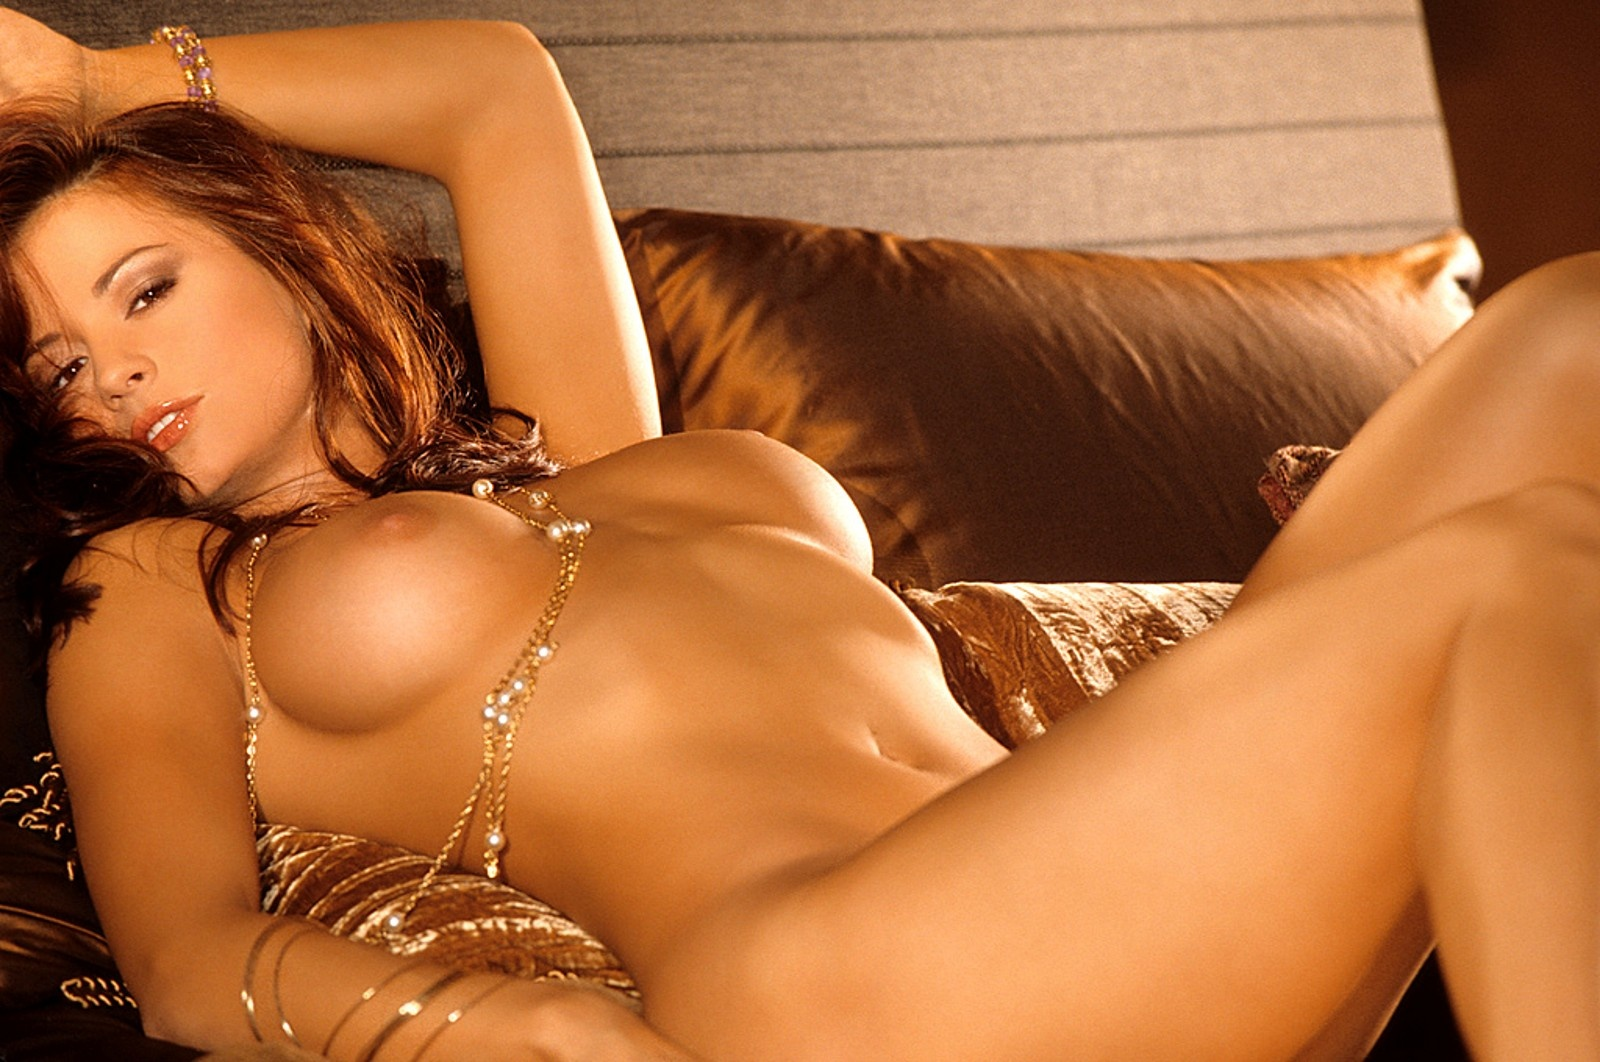 Wwe divas nude backgrounds agree, remarkable